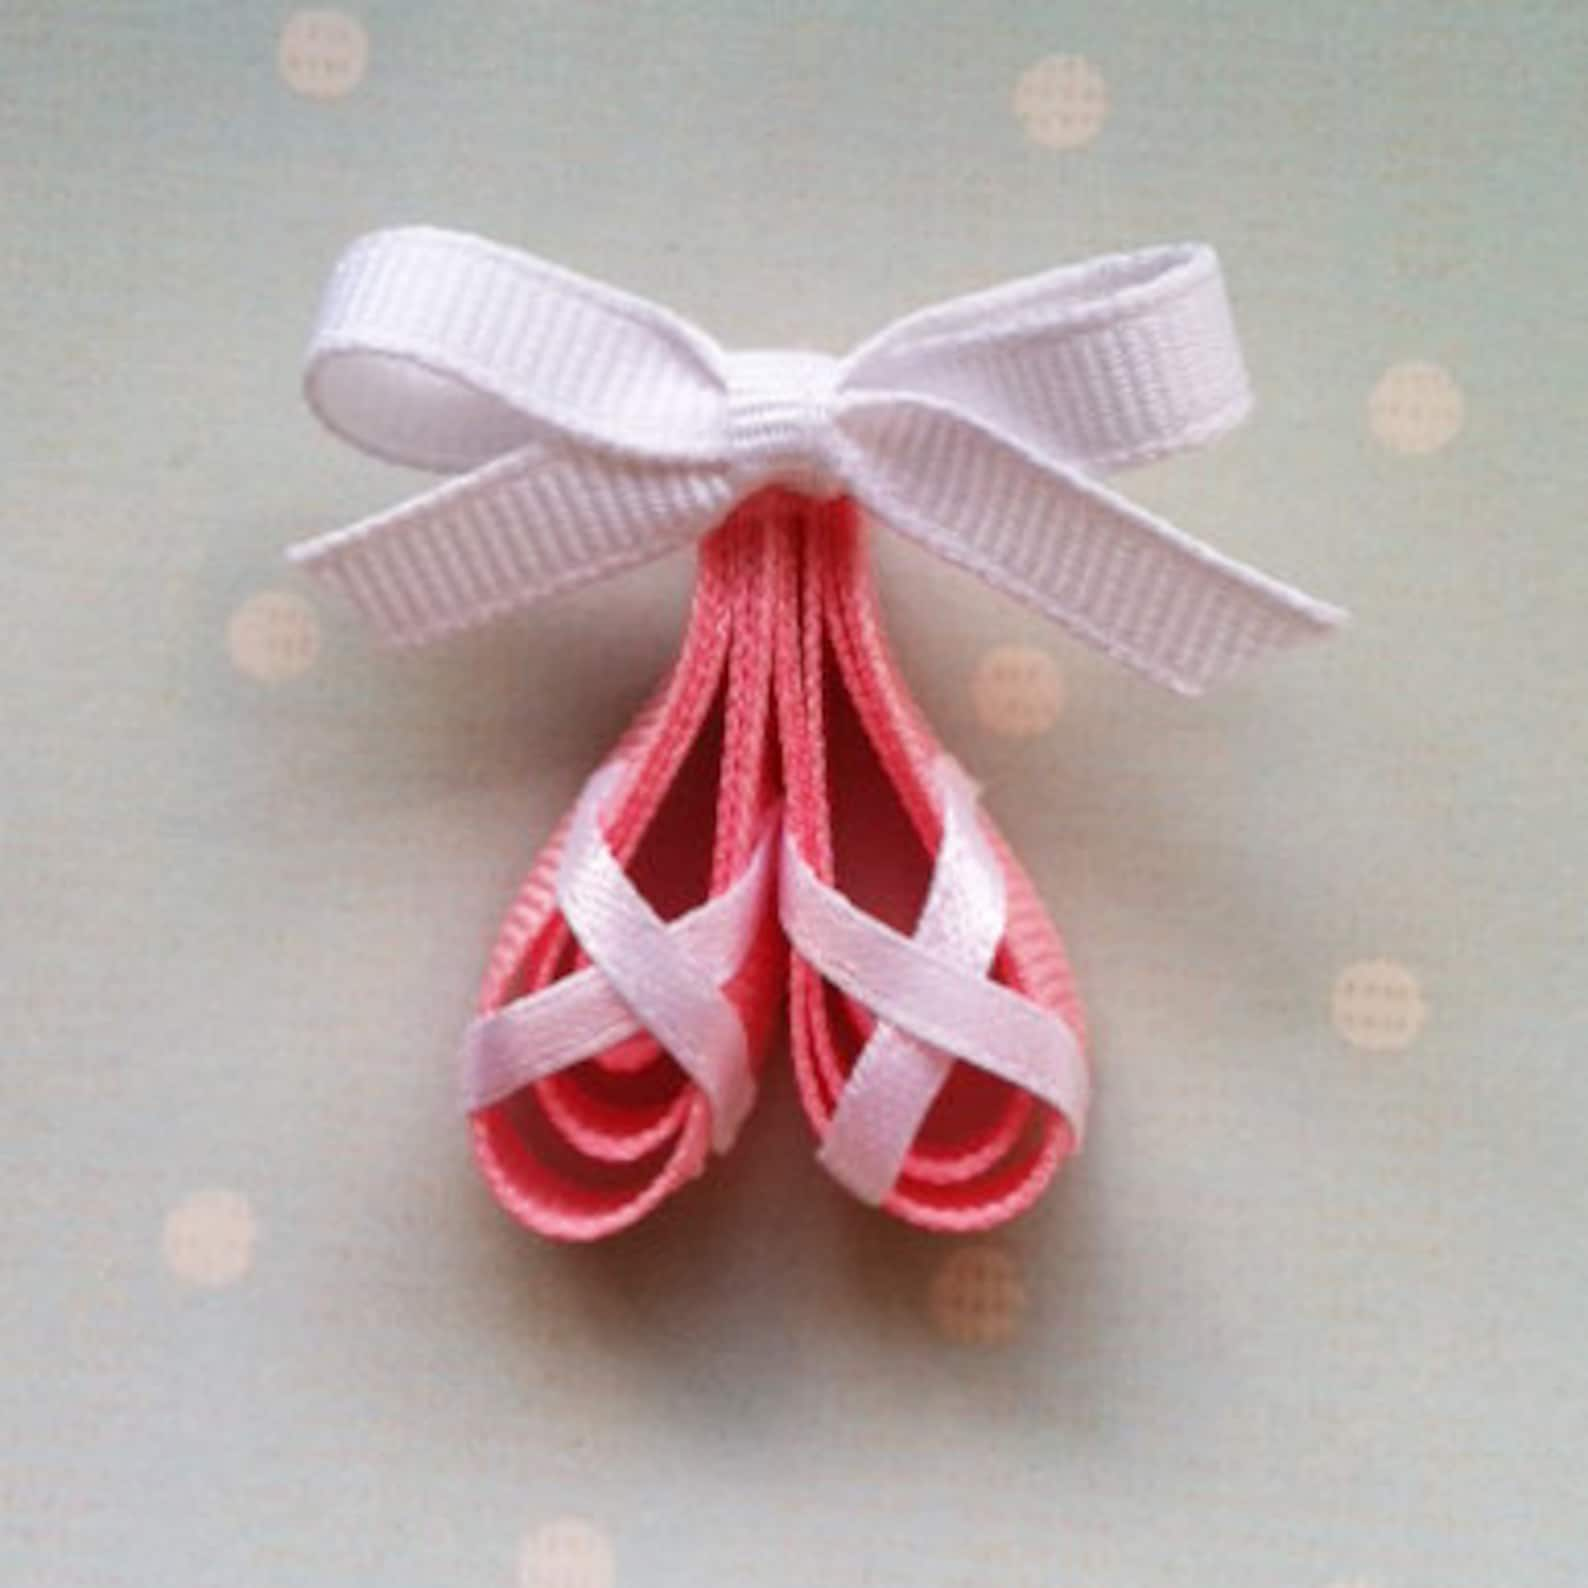 pink ballerina slippers ribbon sculpture hair clip, ballet shoes hair clip, dance hair clip, ballerina slippers hair clip, free